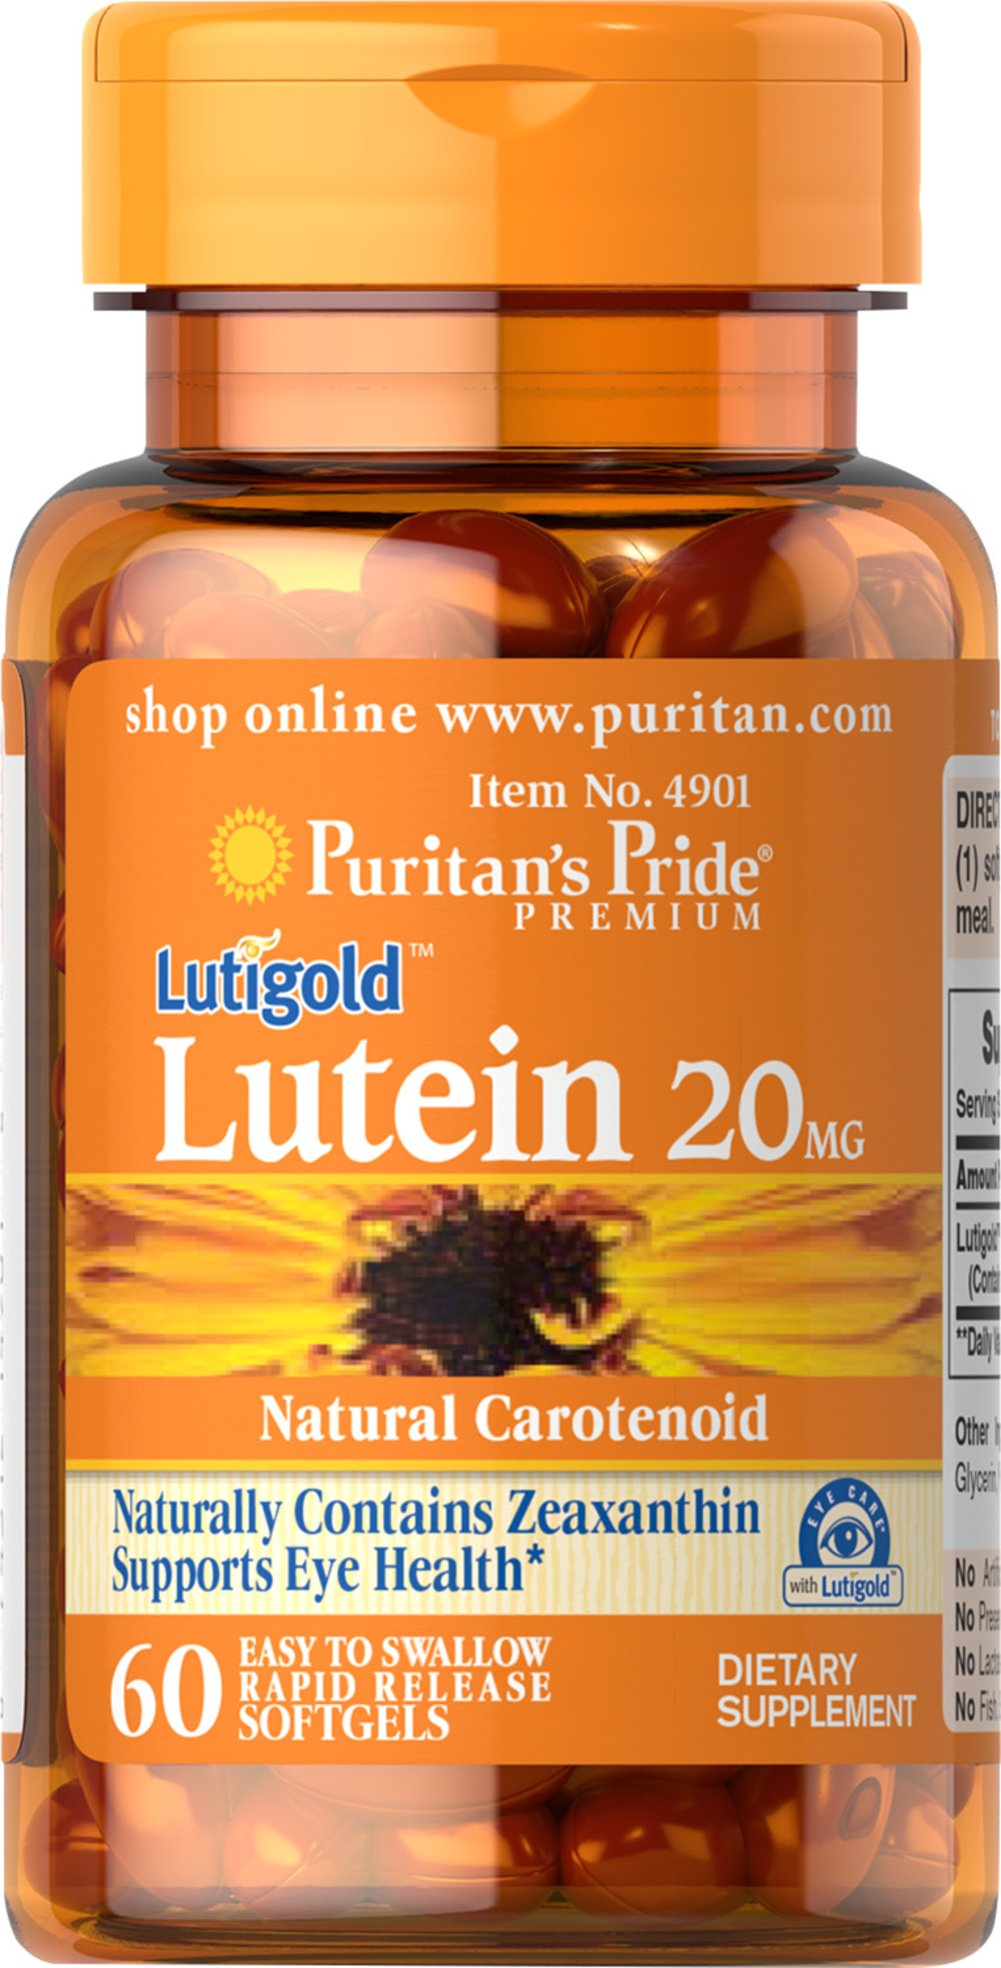 Lutein 20 mg with Zeaxanthin  60 Softgels 20 mg $13.59